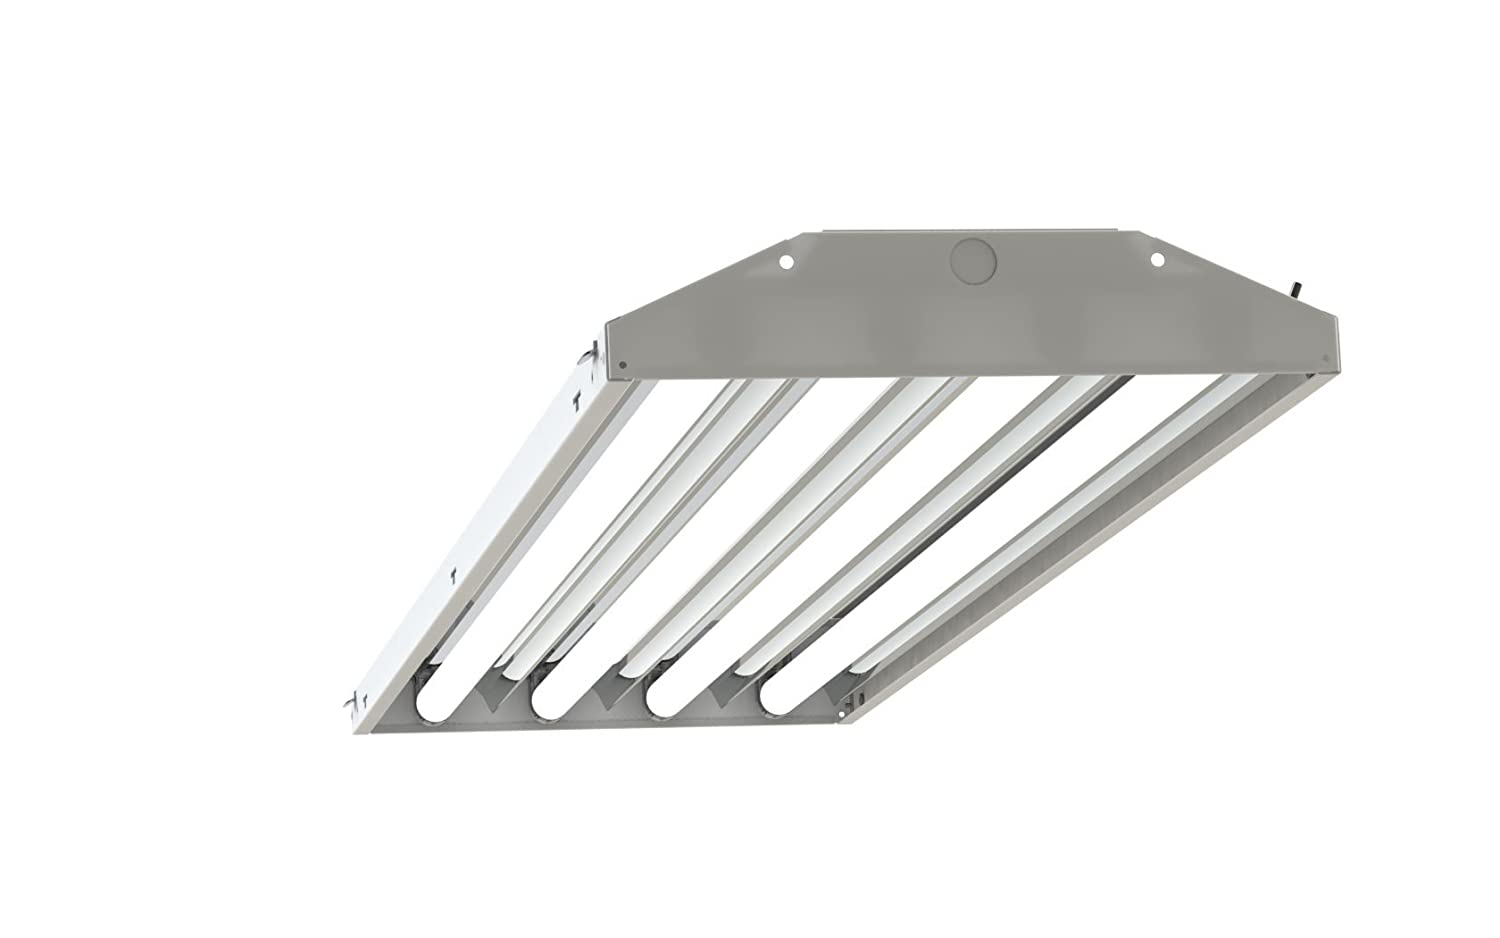 4 lamp t5 ho high bay fluorescent lighting fixture high output 4 lamp t5 ho high bay fluorescent lighting fixture high output t5ho 120 277v w lamps and wire guard amazon arubaitofo Image collections